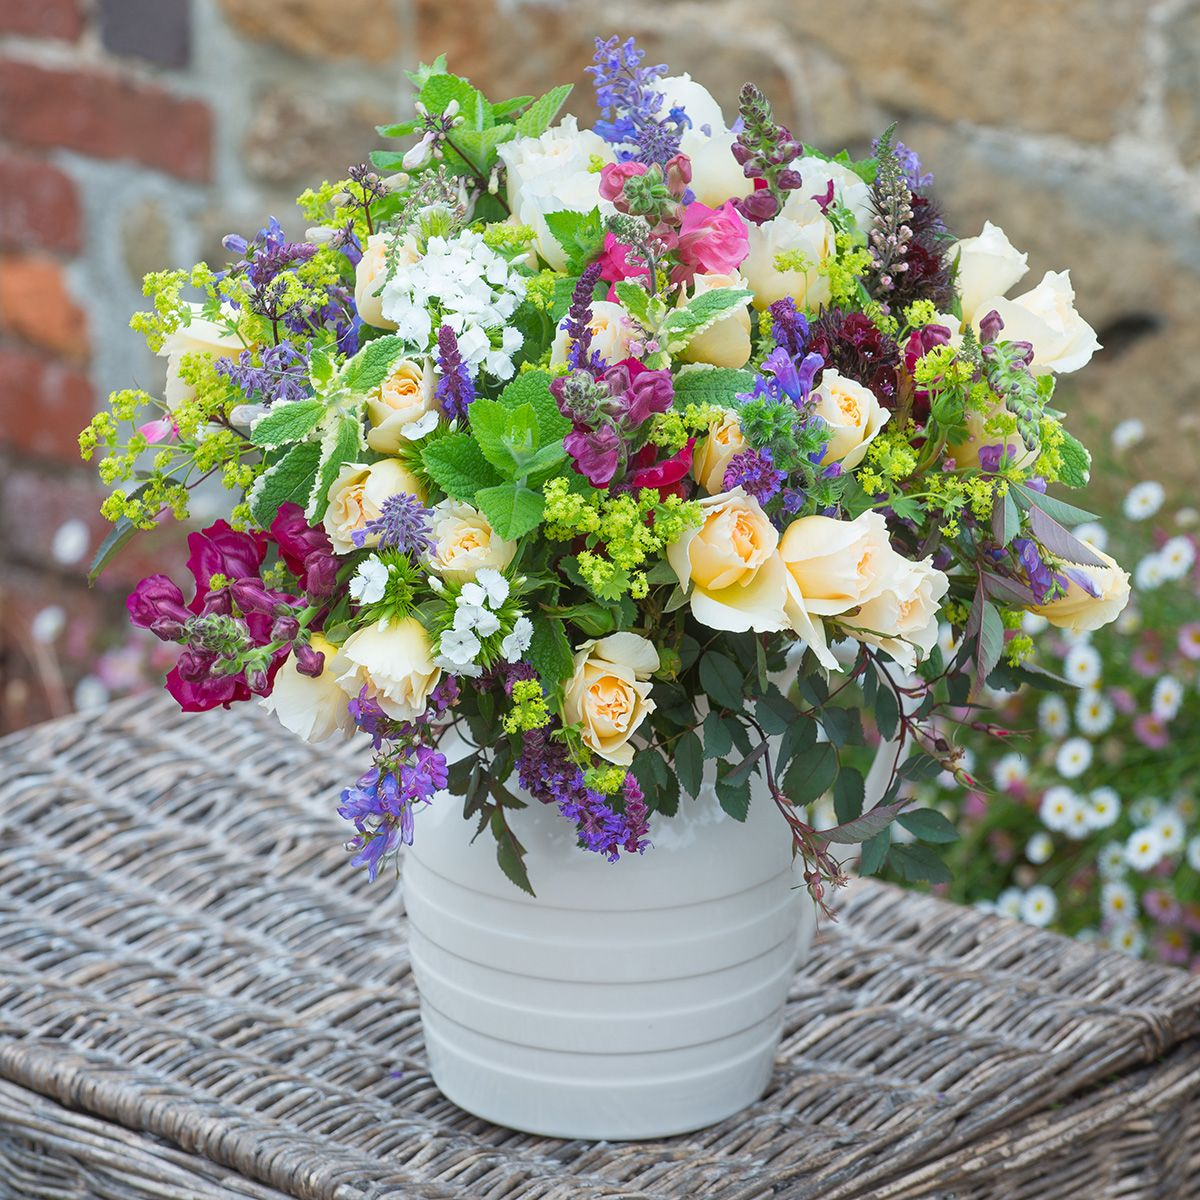 Irish Hope & Wildflower Bouquet From